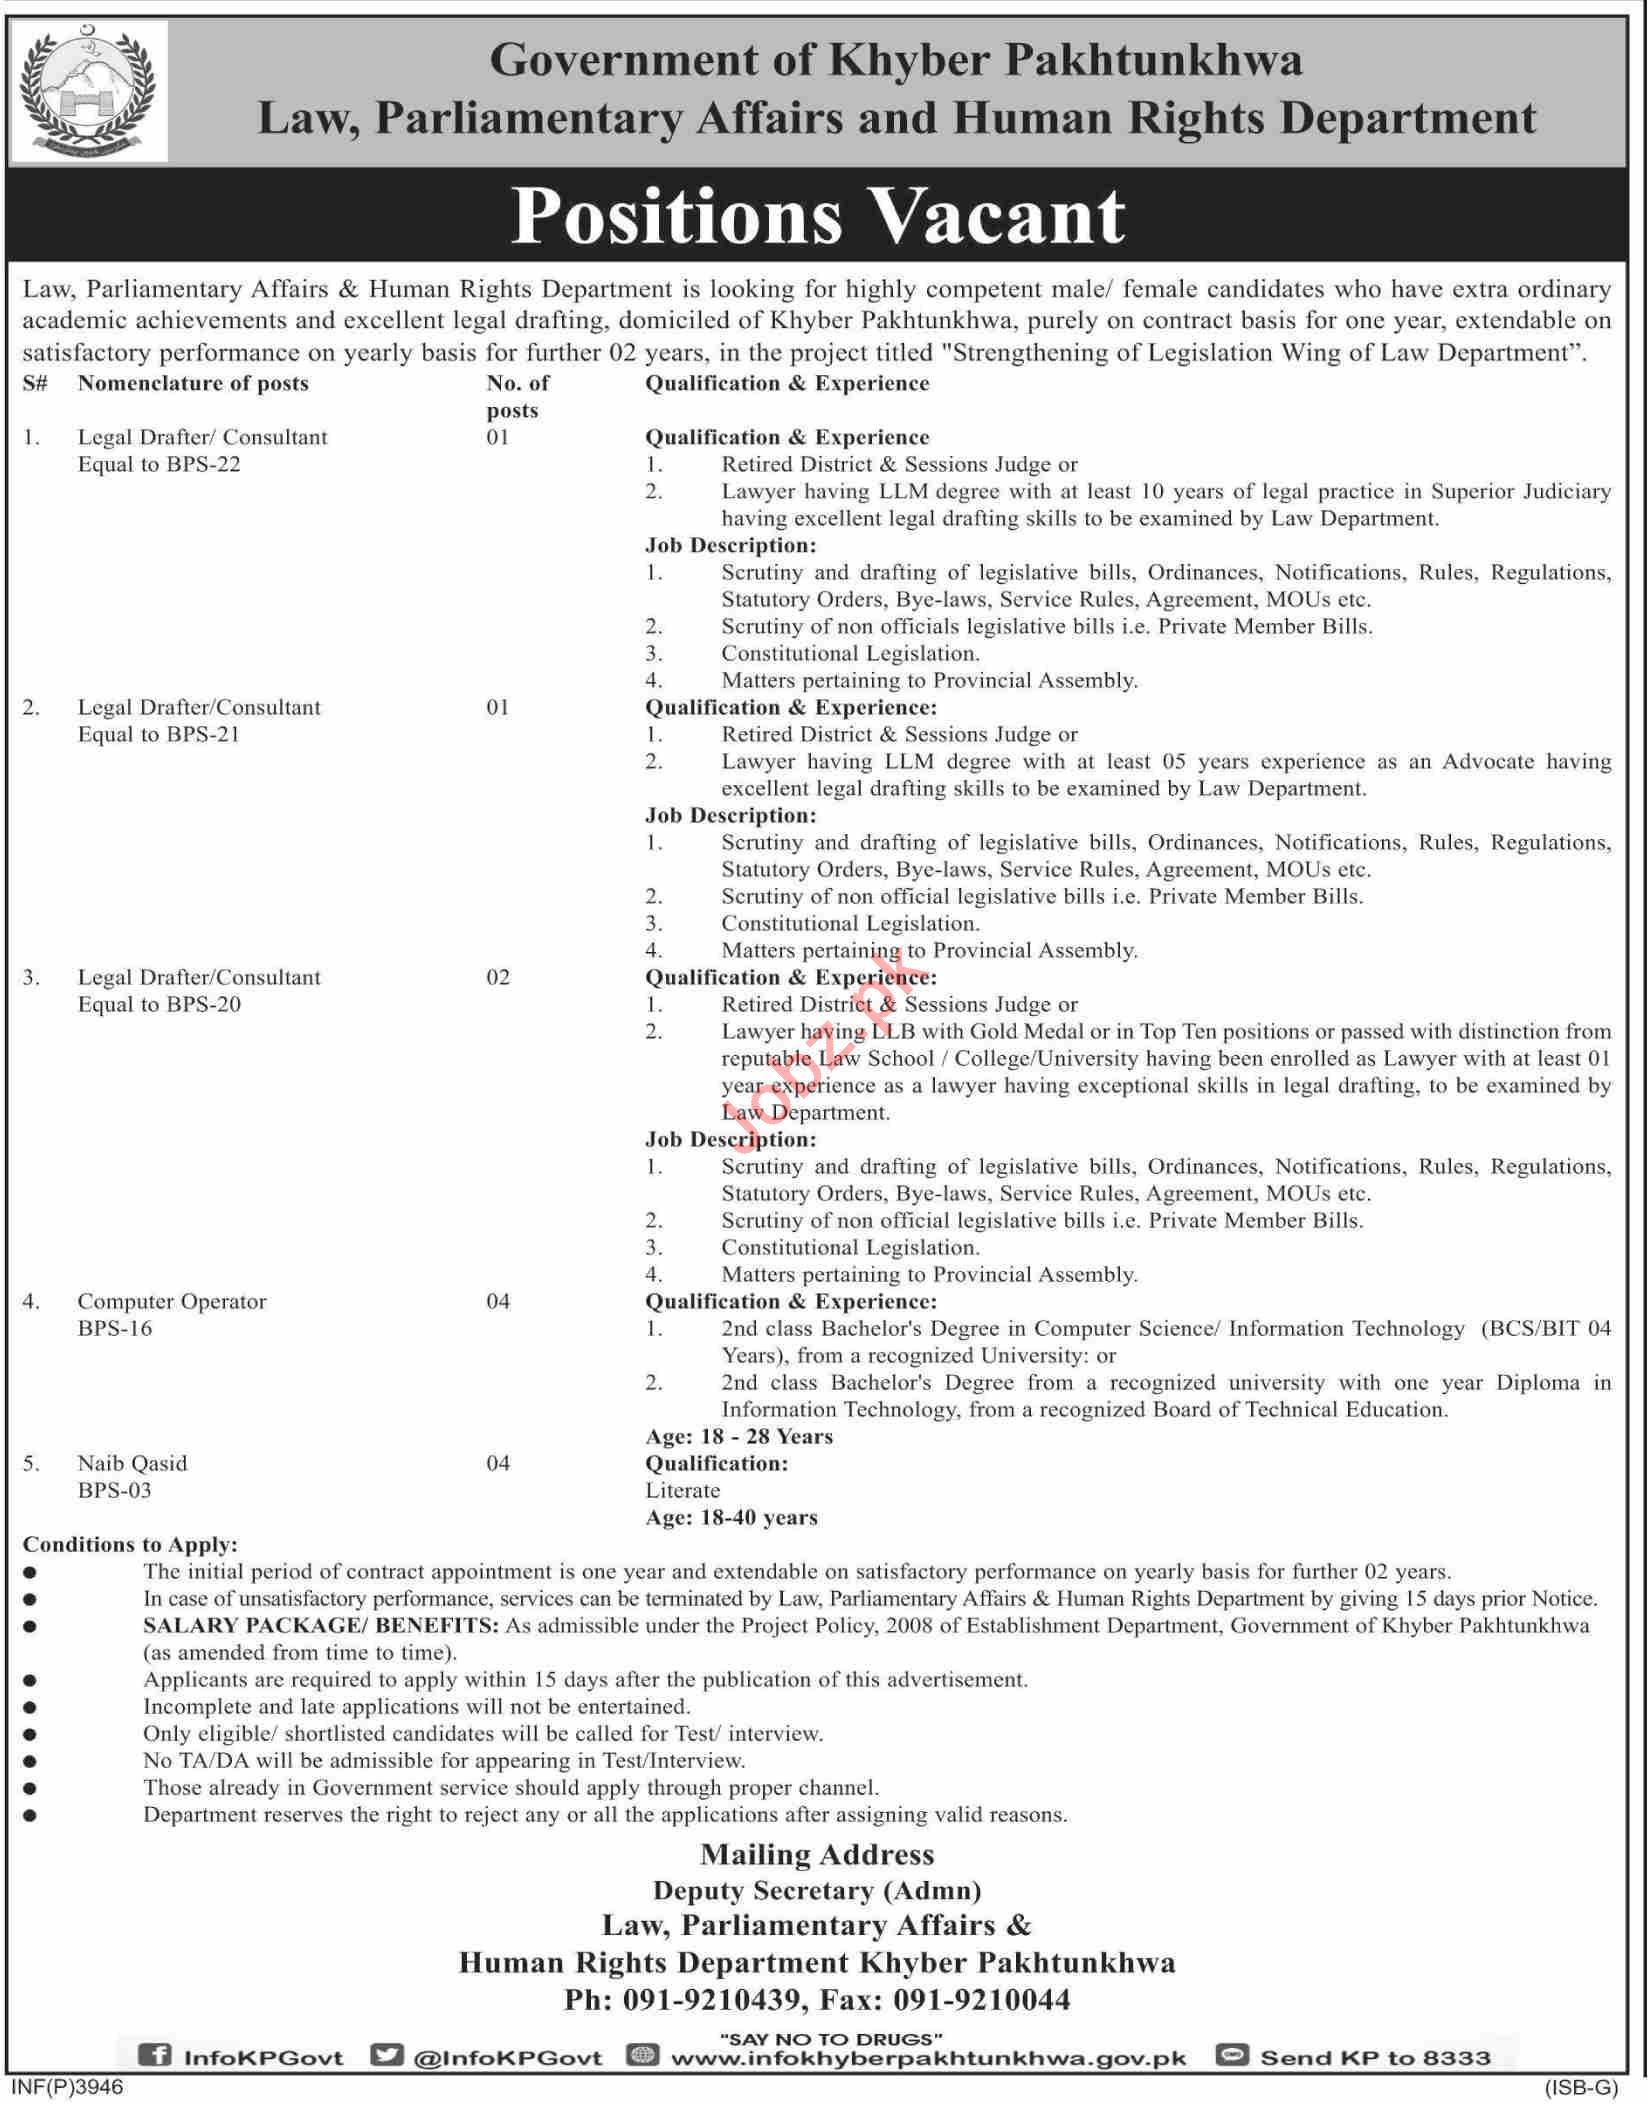 Law Parliamentary Affairs & Human Rights Department KPK Jobs